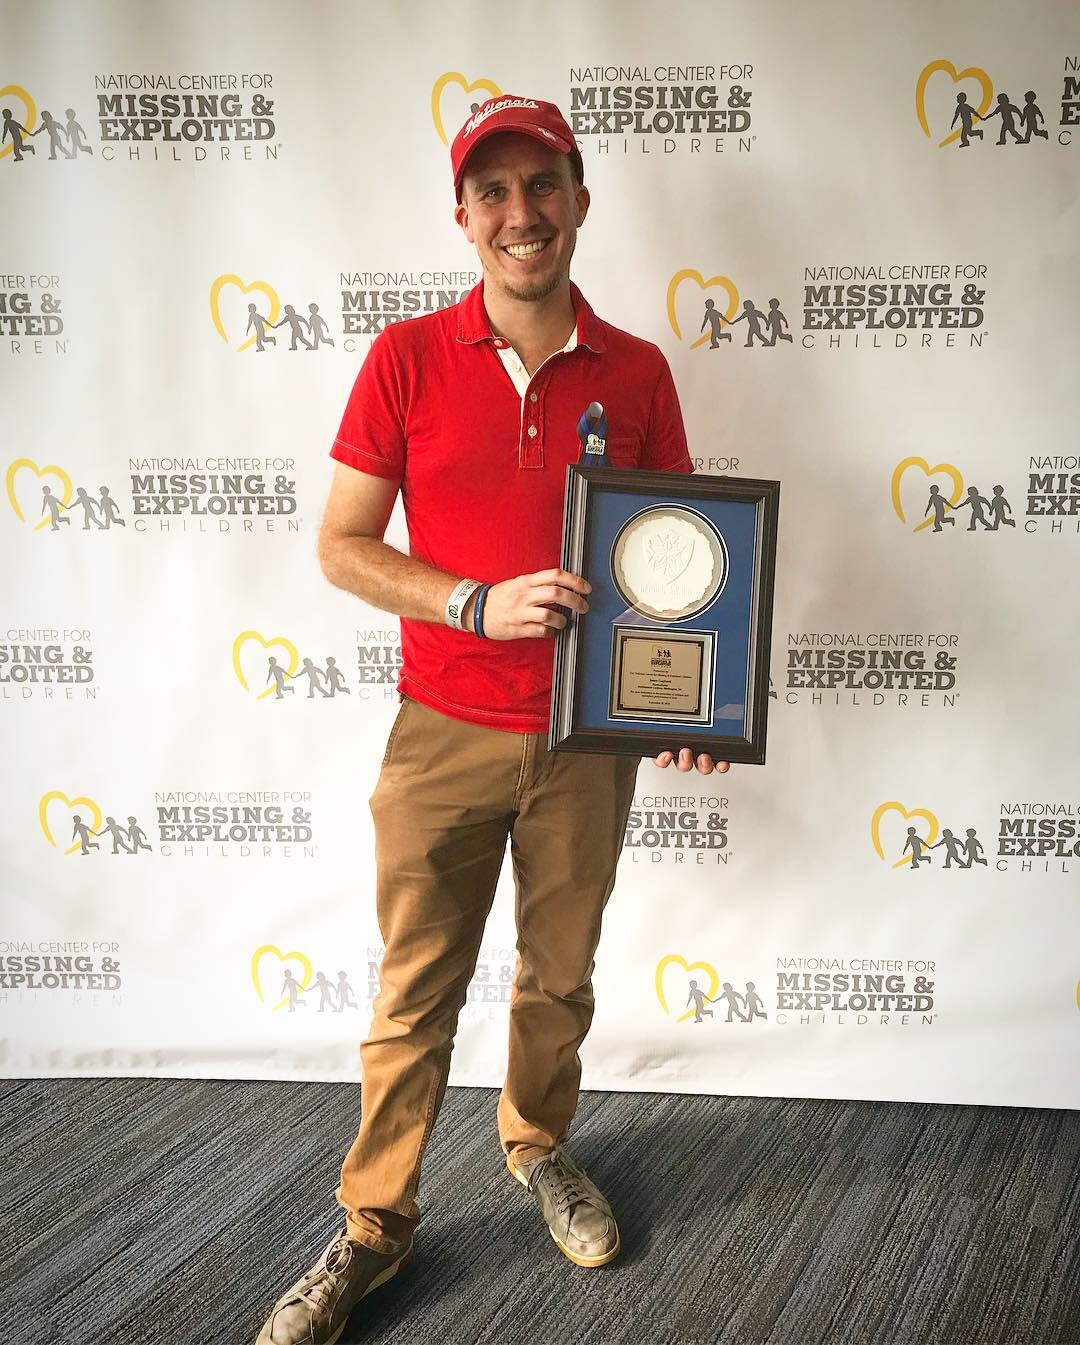 Gagliardi in red shirt and cap in holding award in front of step-and-repeat screen